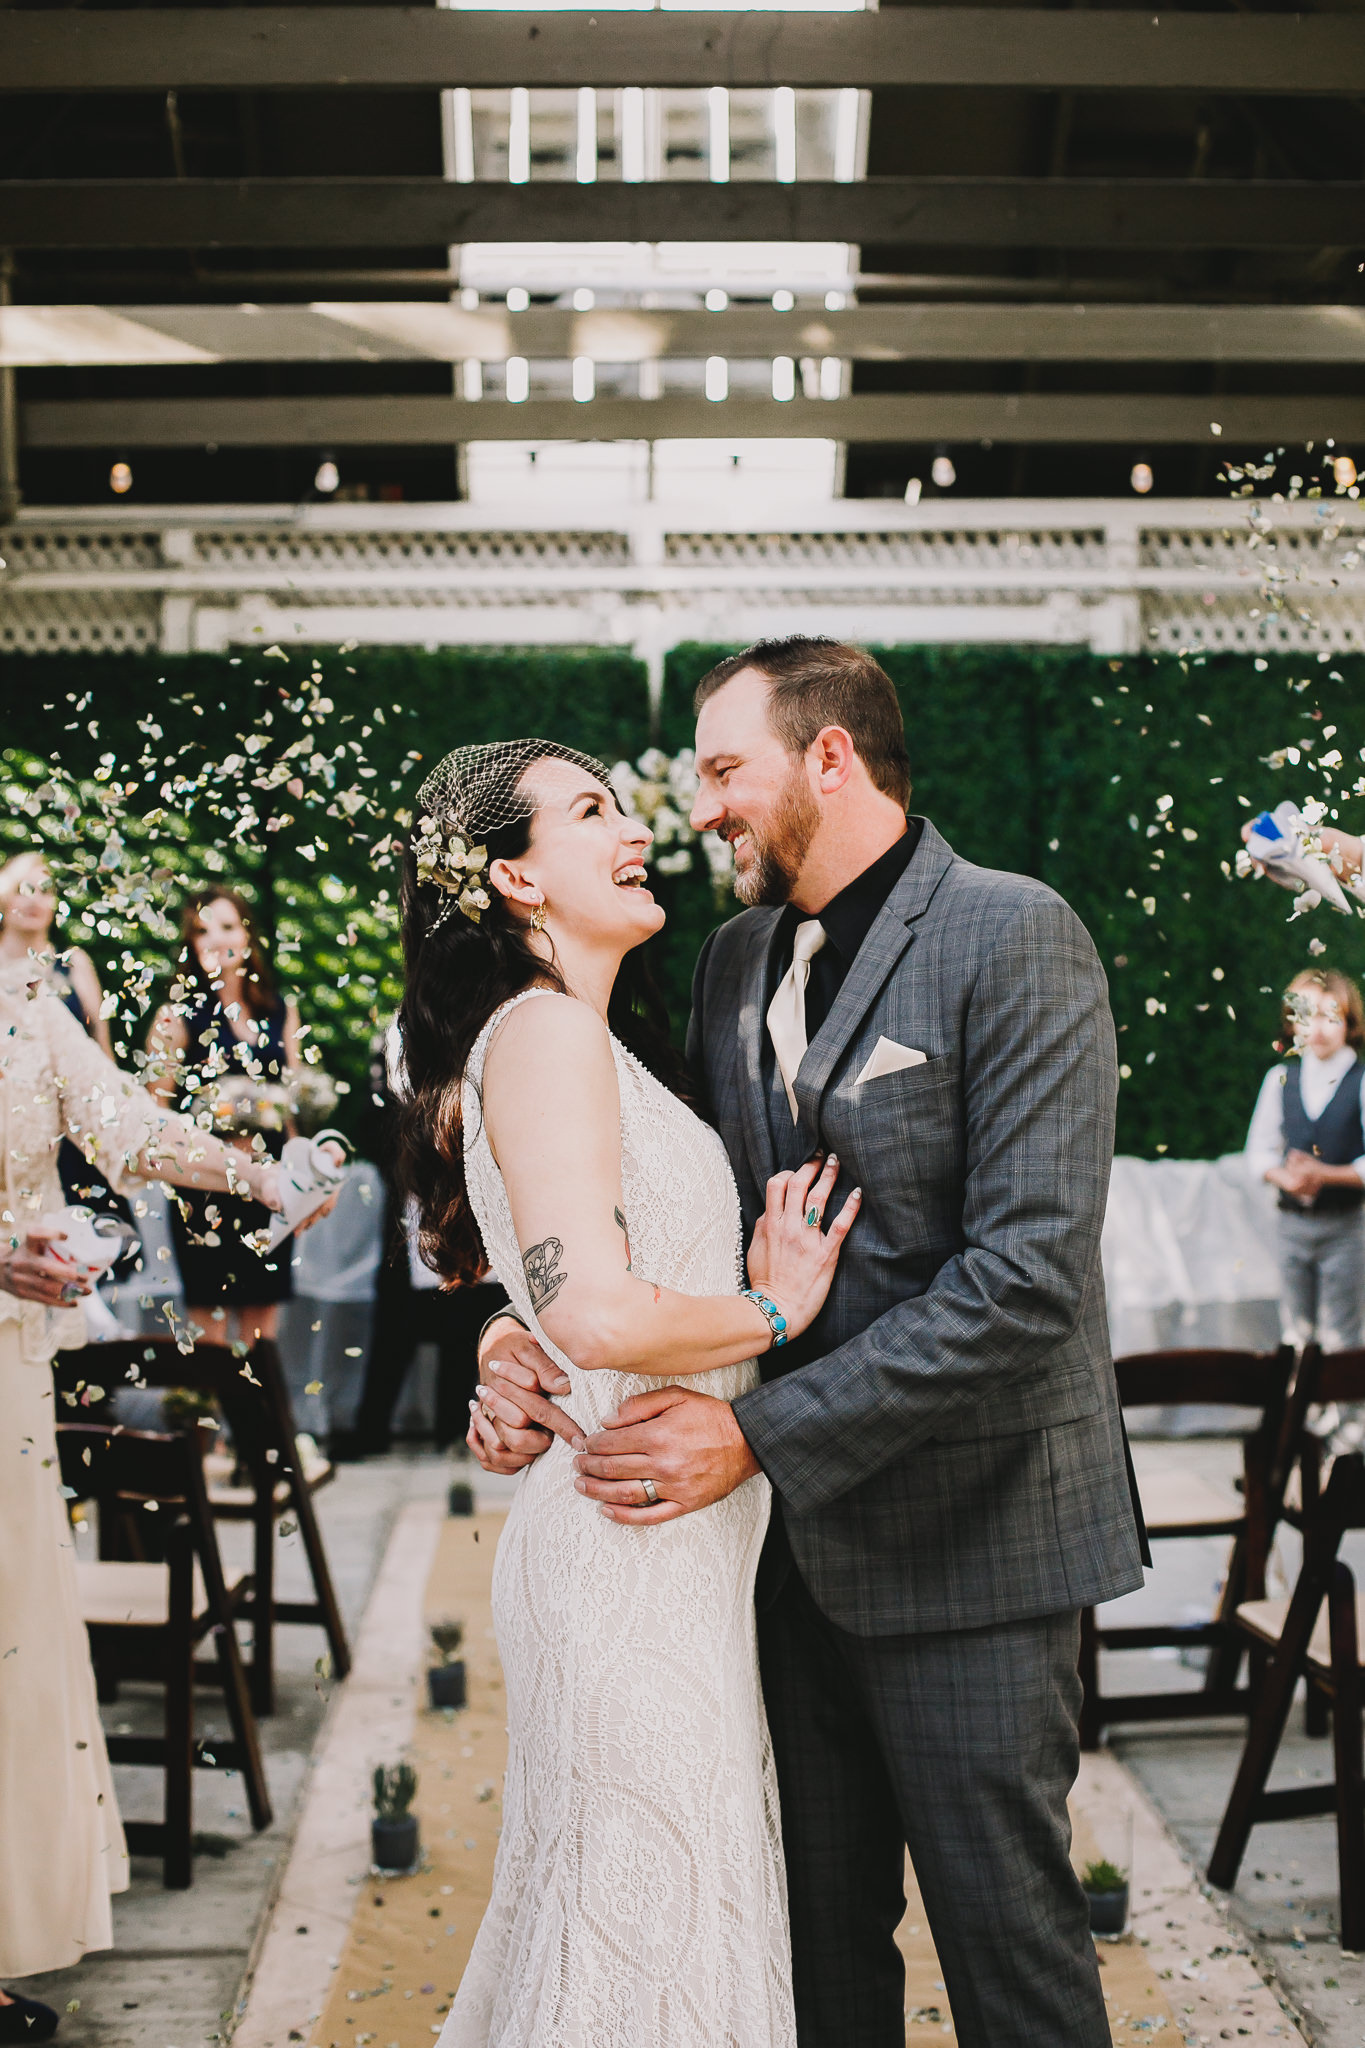 Archer Inspired Photography Sara and Aaron Winchester Mystery House NorCal San Jose California Wedding Photographer-186.jpg